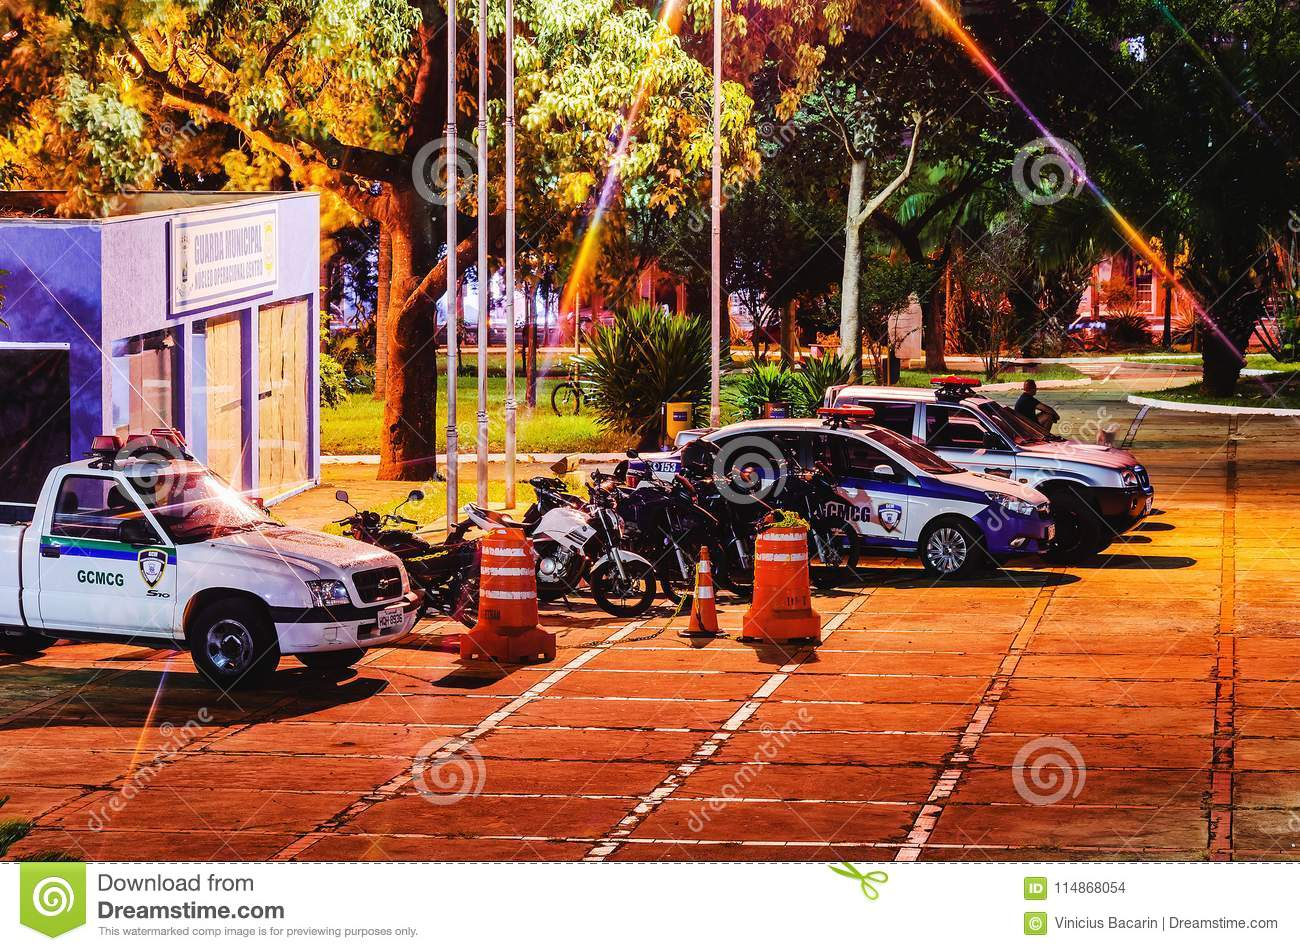 Police Cars Of Guarda Municipal At And Event In Campo Grande Ms